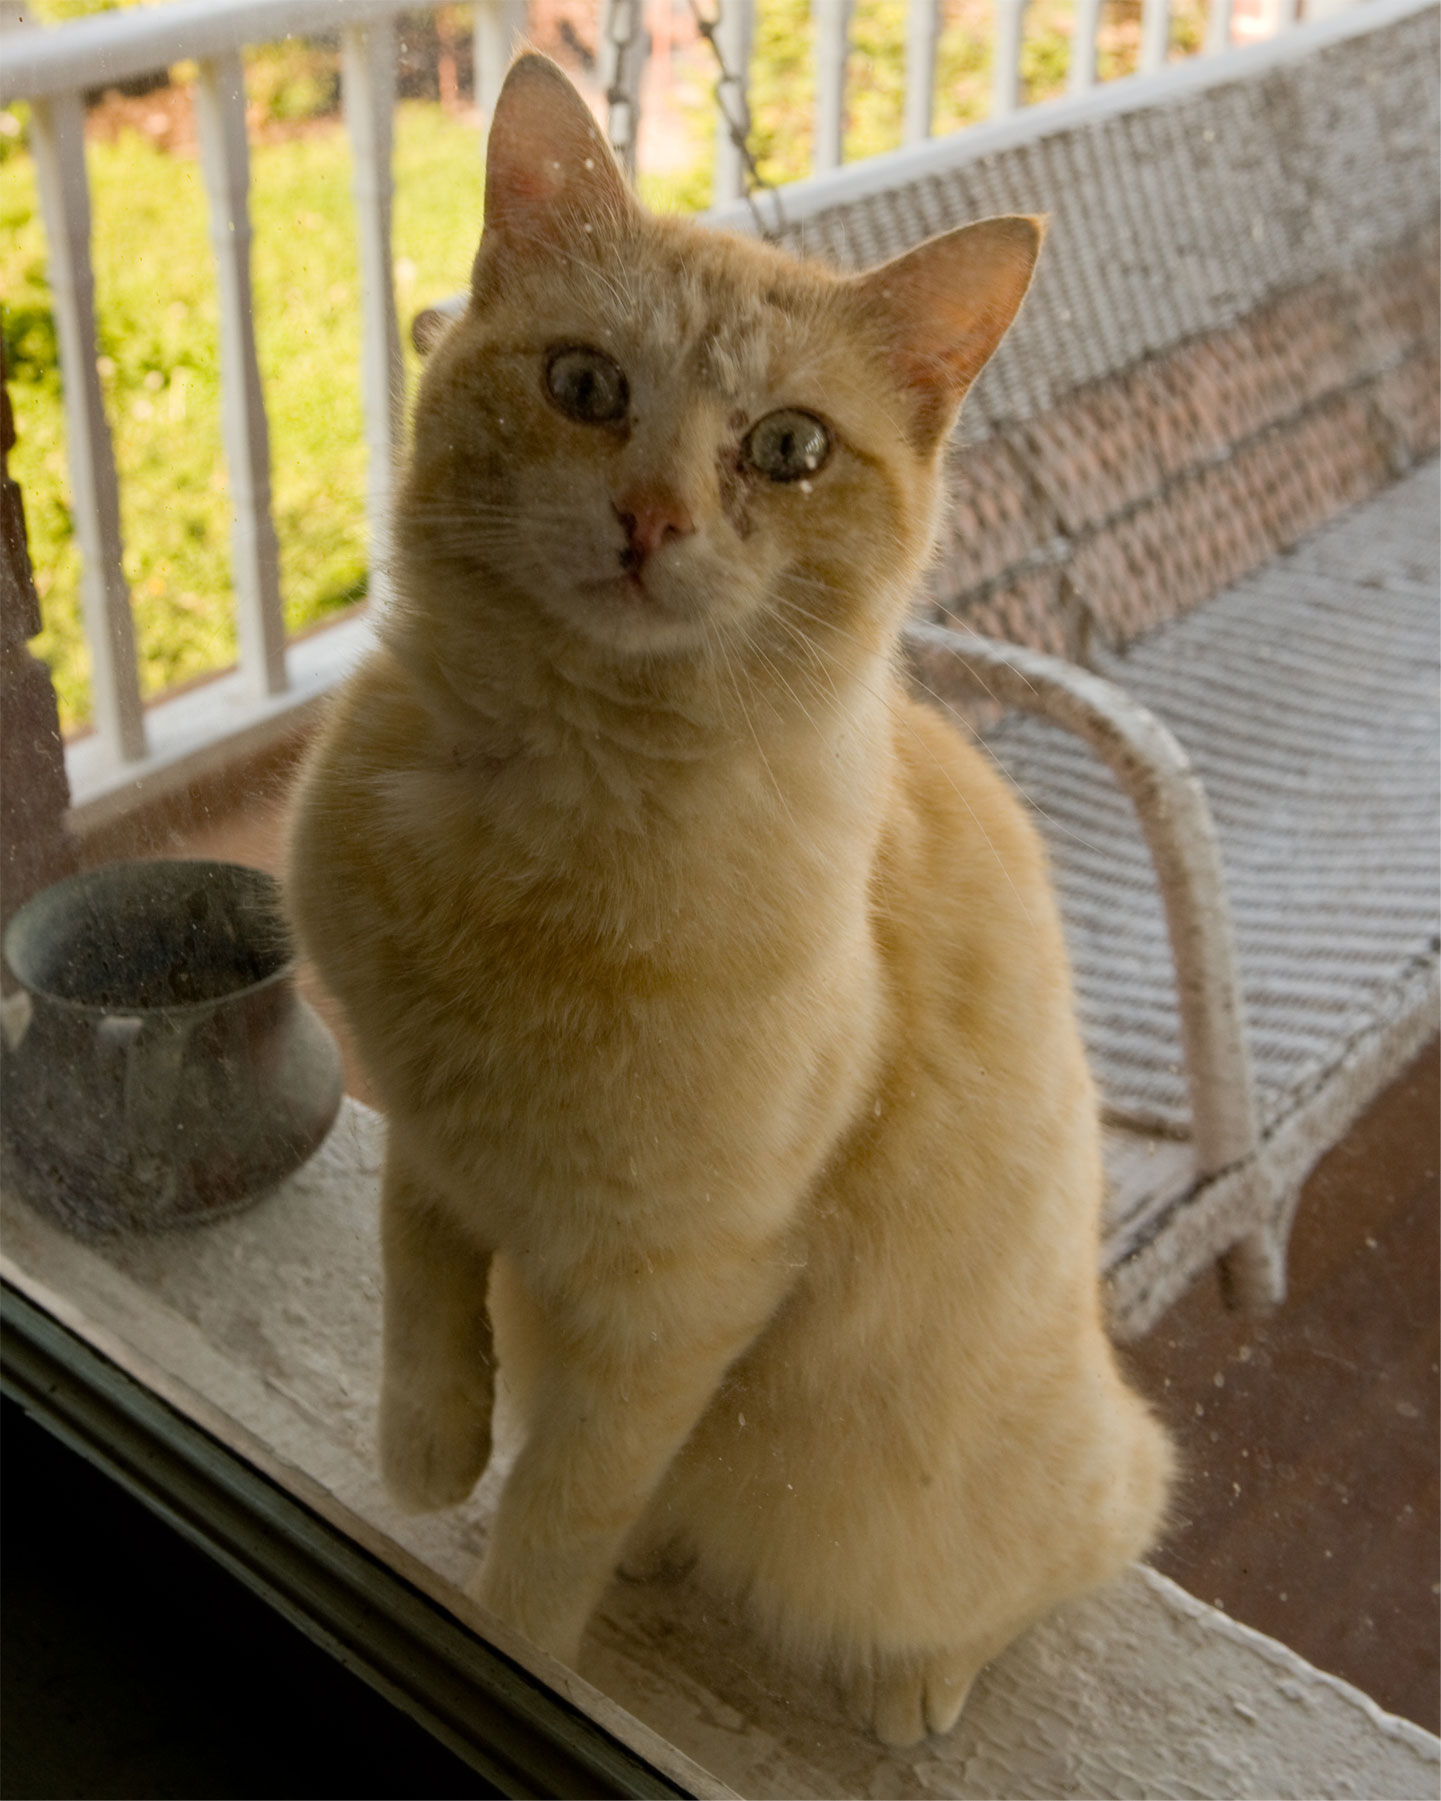 Garfield looking through the front window. He is the first of our Pounce to get adopted out and has a nice new home.